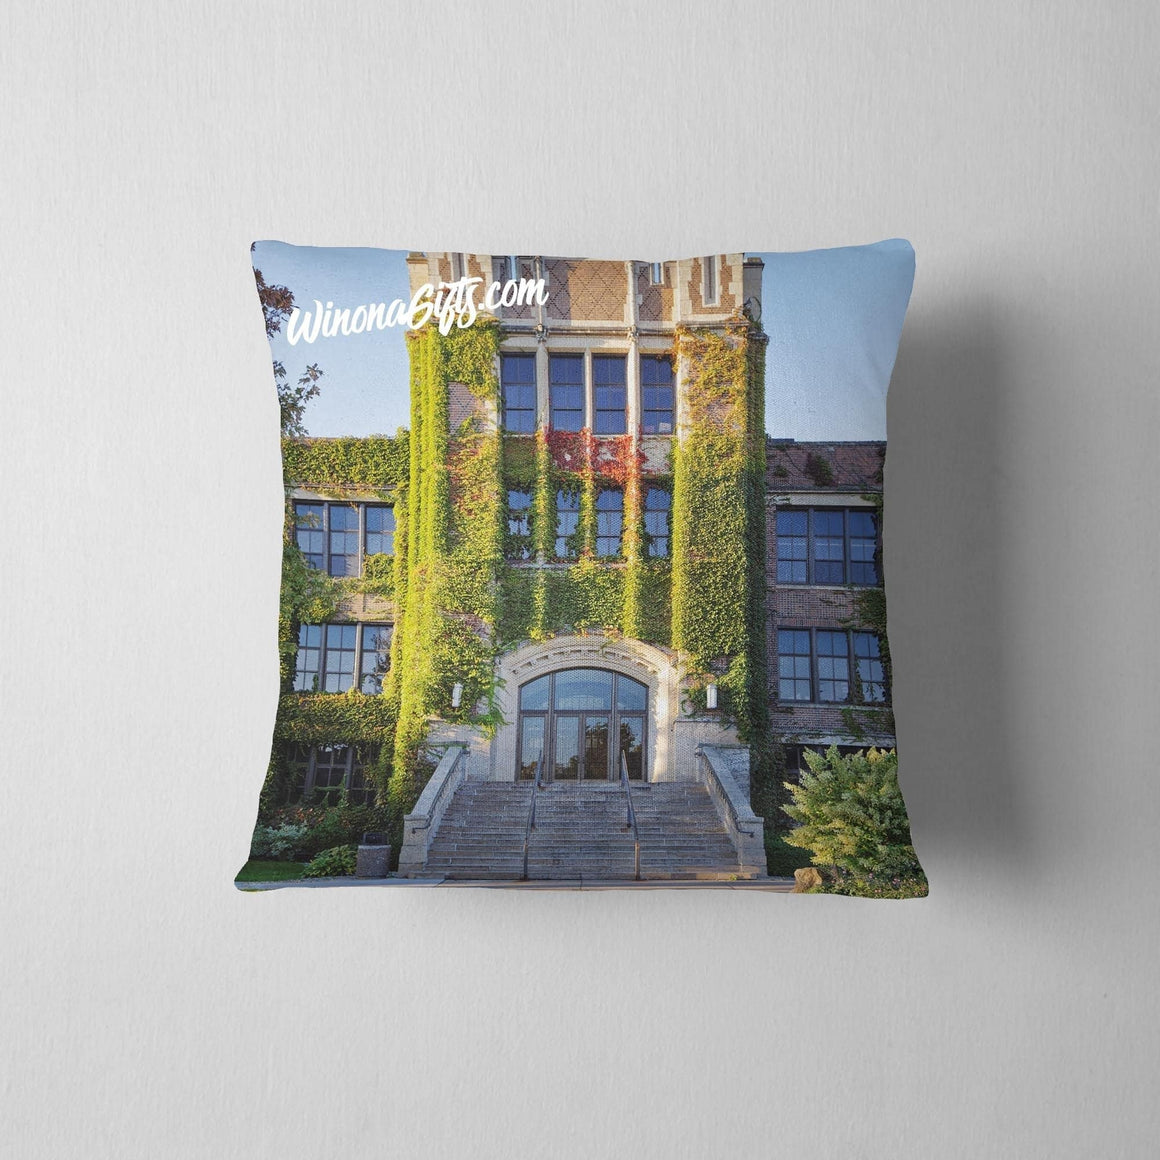 winona state university somsen hall photo pillow